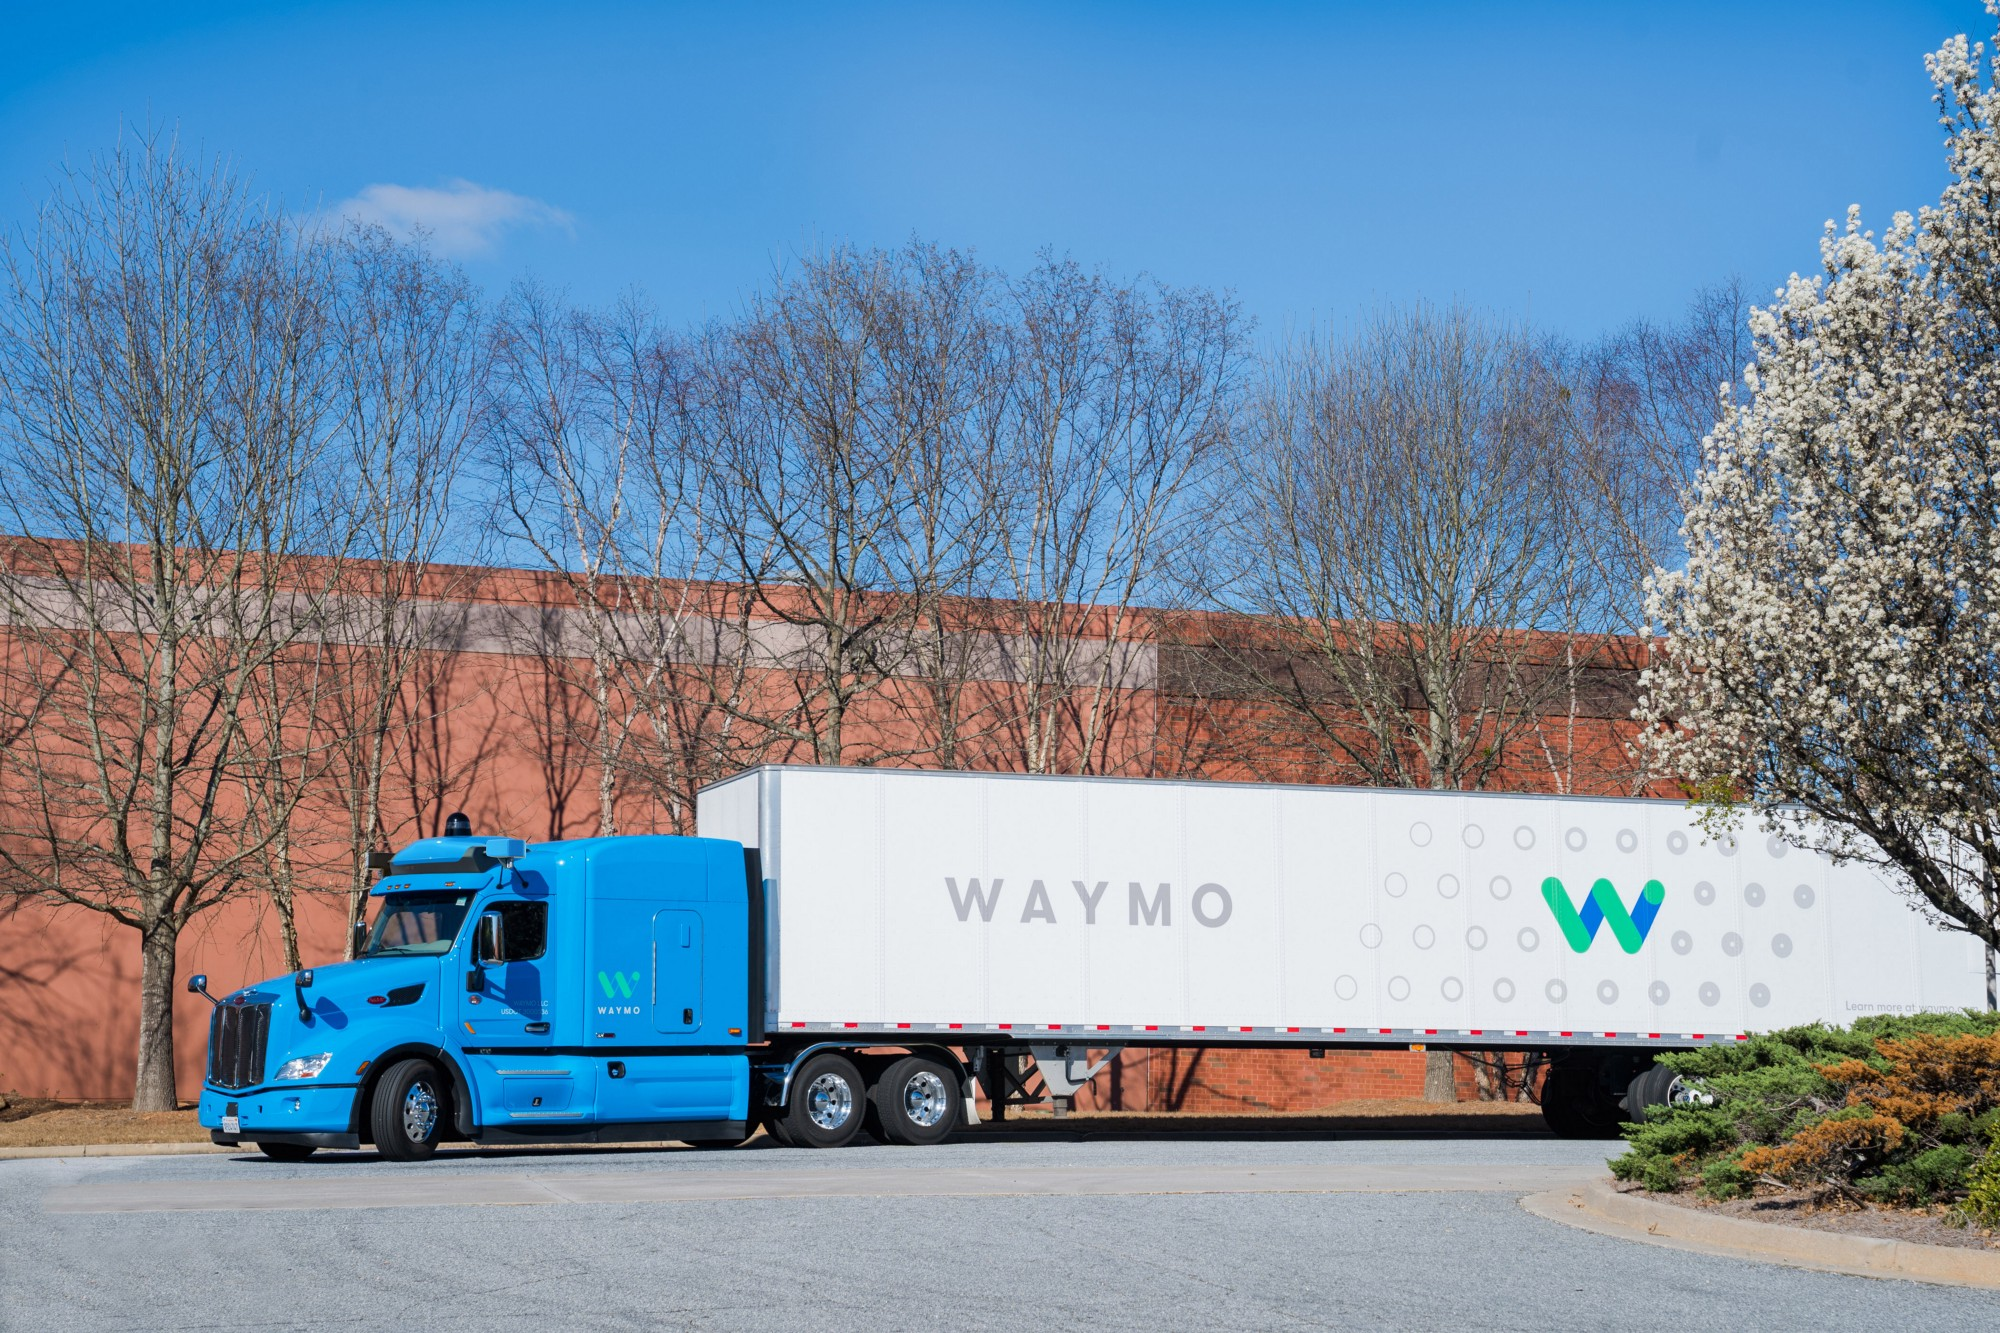 Waymo's self-driving 18-wheelers hit the road in Georgia